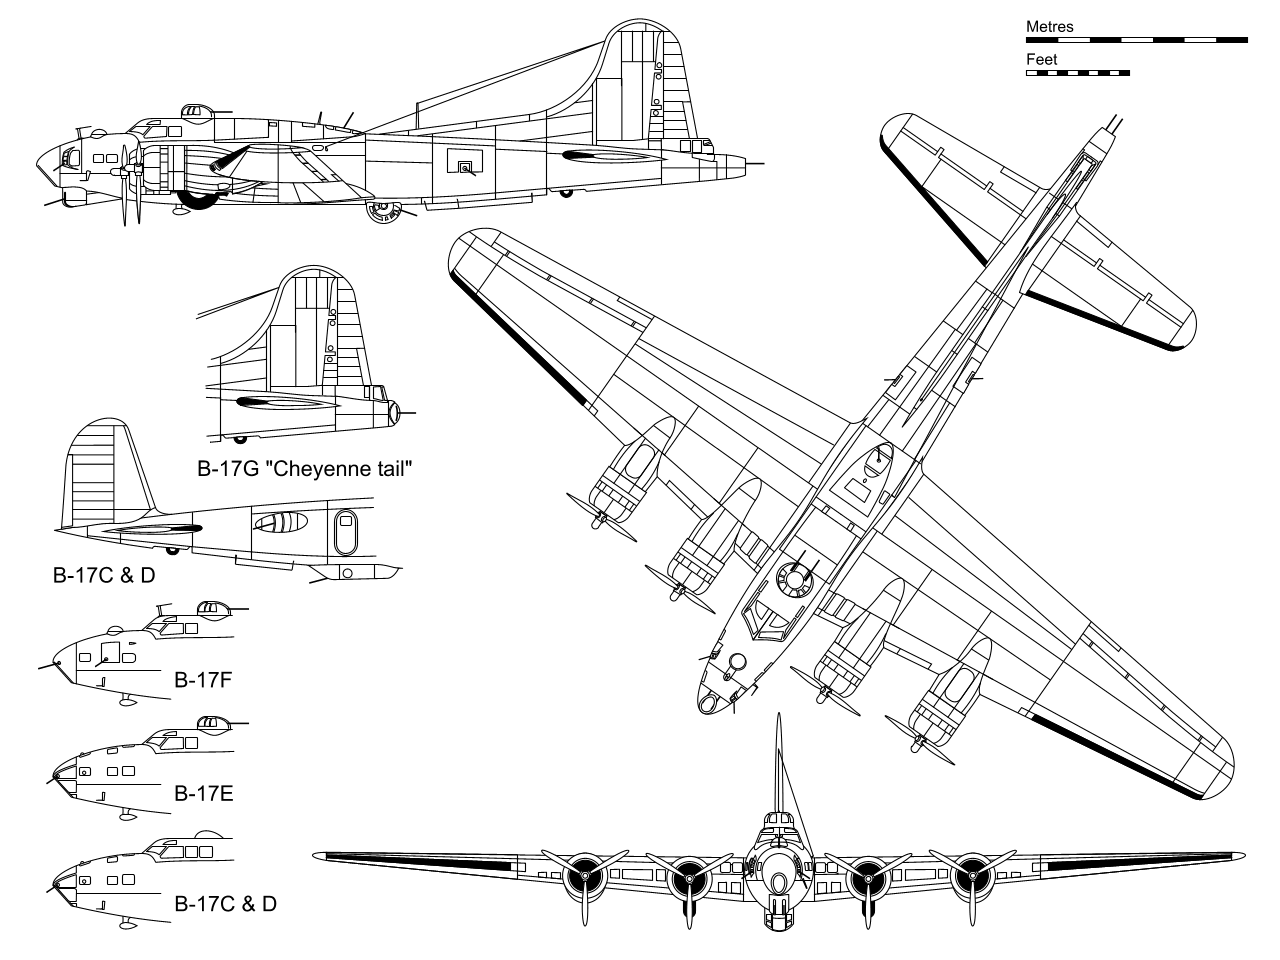 hight resolution of boeing b 17 flying fortress wikipedia b 17 engine diagram